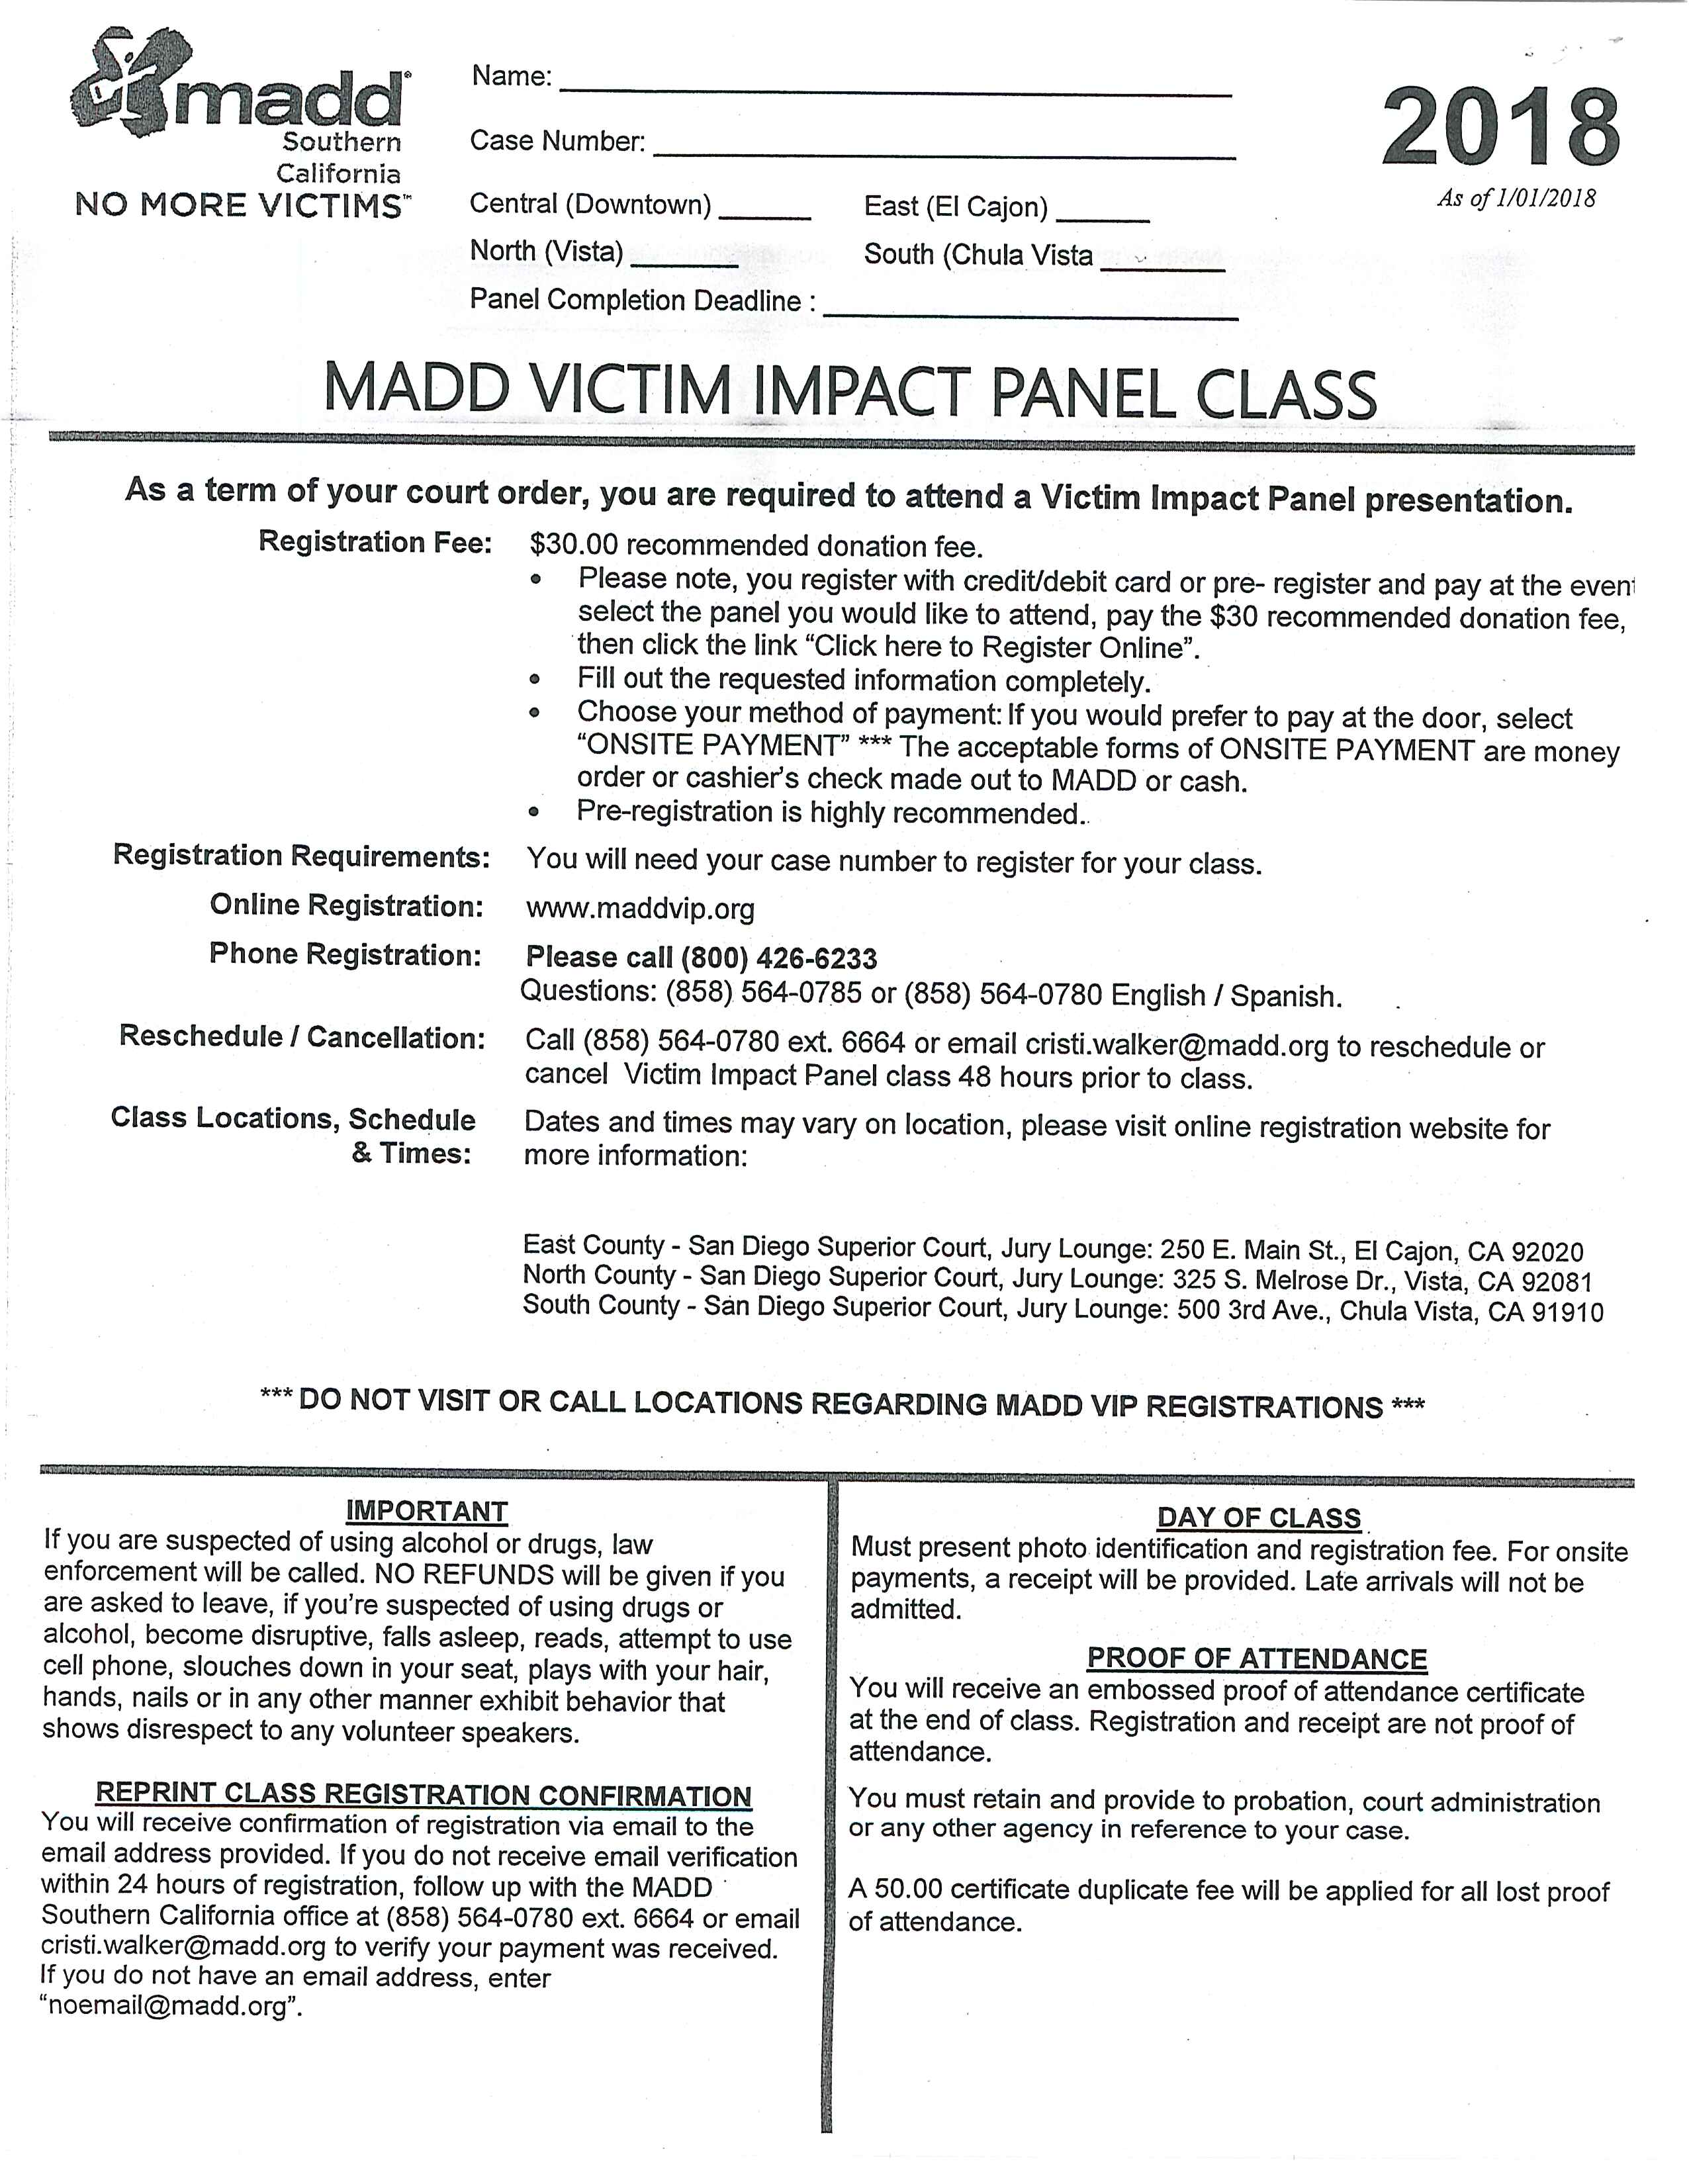 MADD DUI Completion Form